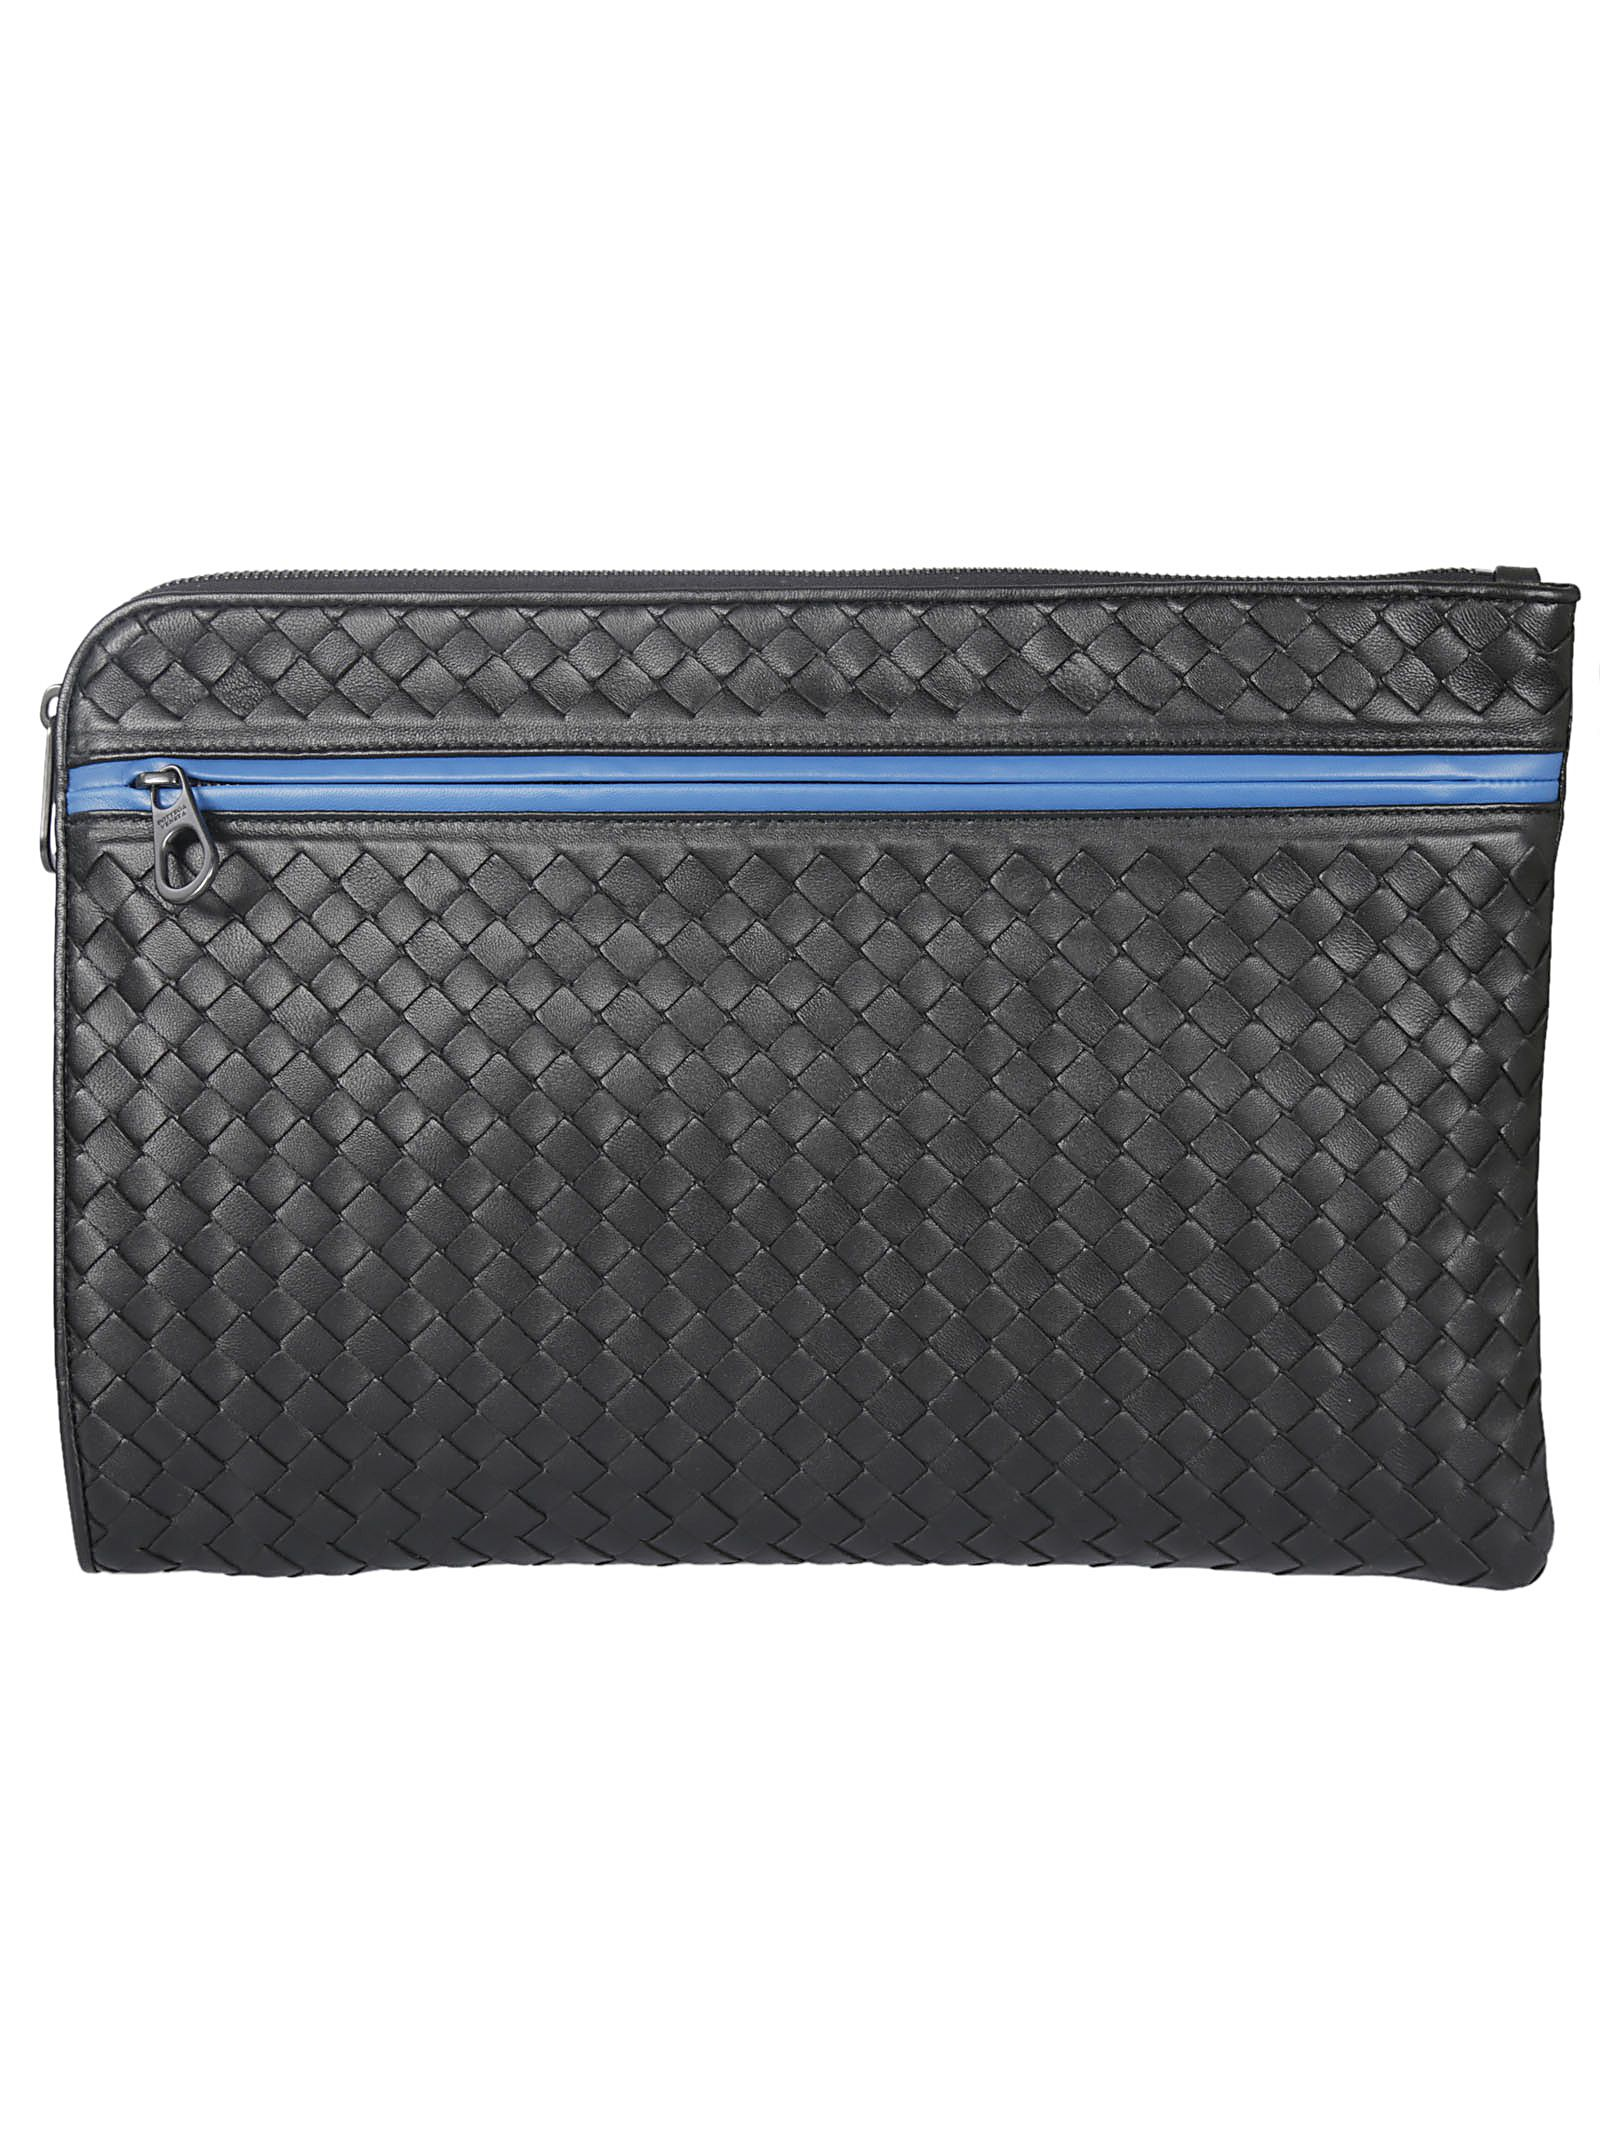 Bottega Veneta Two Zipped Pocket Clutch